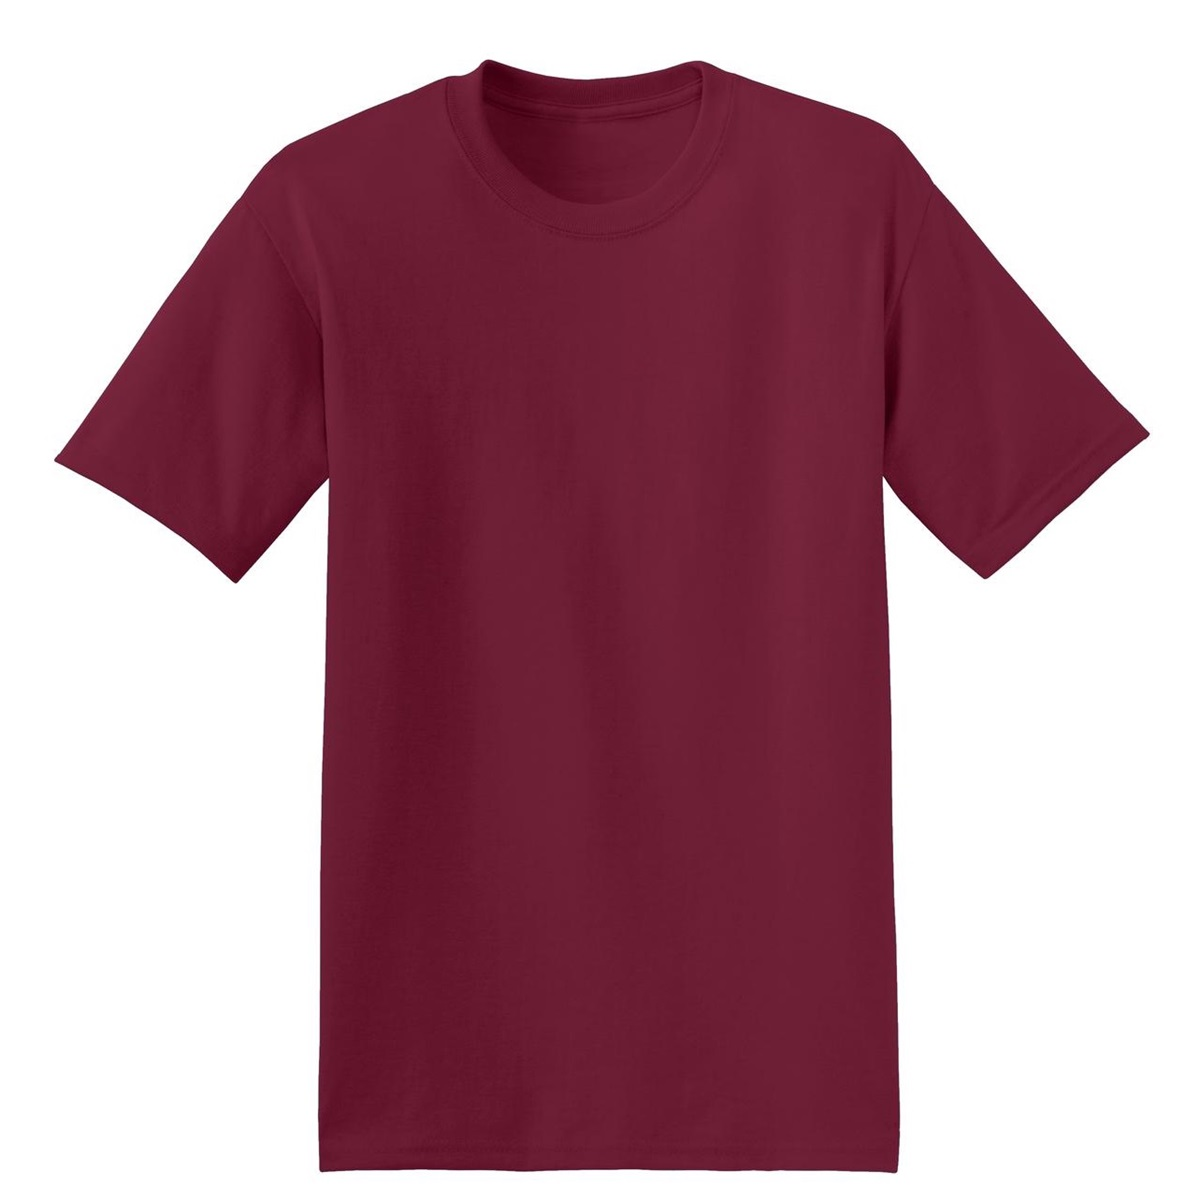 Hanes 5170 comfortblend ecosmart cotton polyester t shirt for Cardinal color t shirts